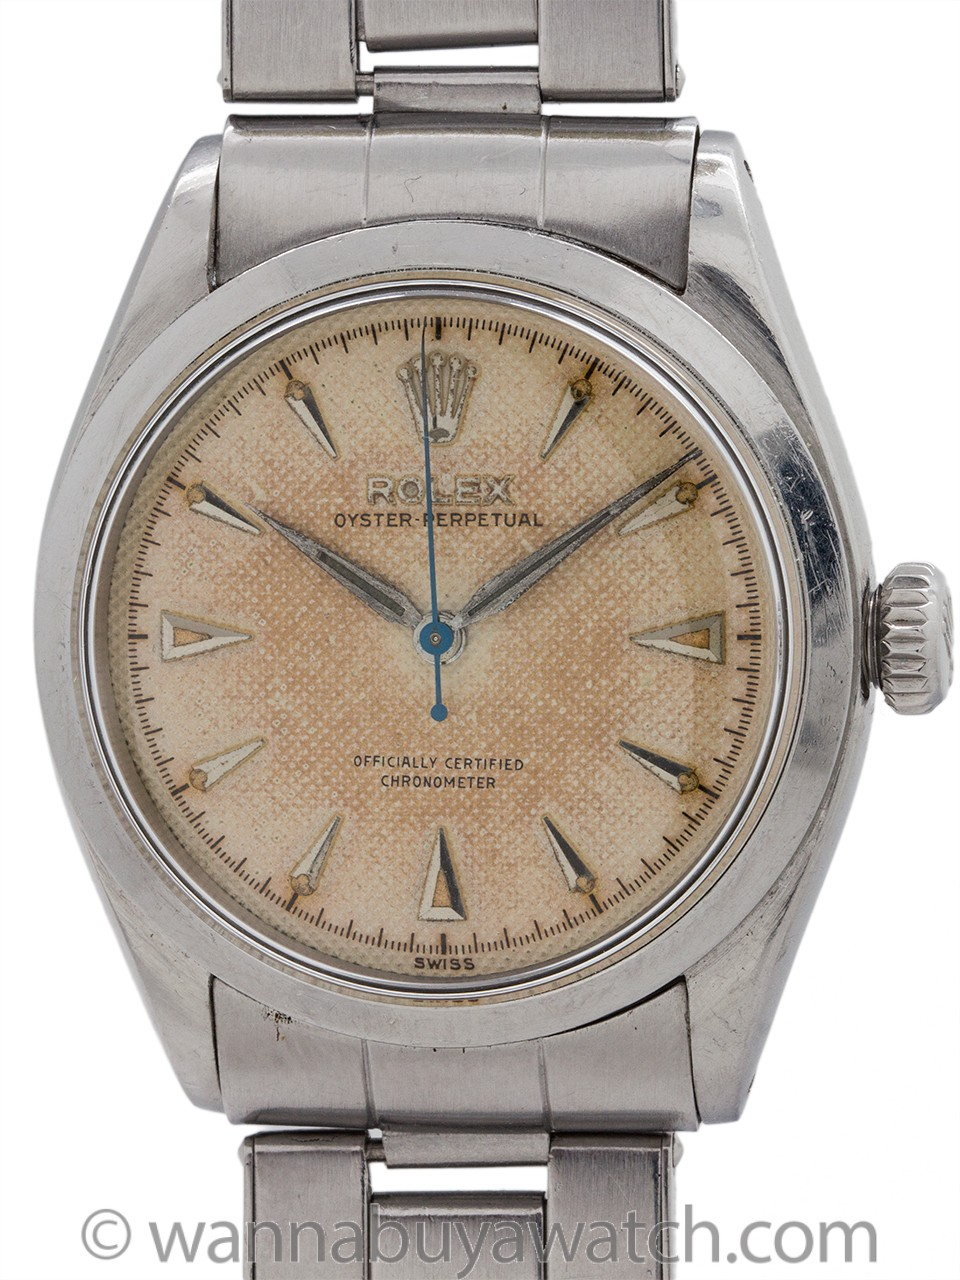 Rolex Oyster Perpetual ref 6284 Waffle Dial circa 1953